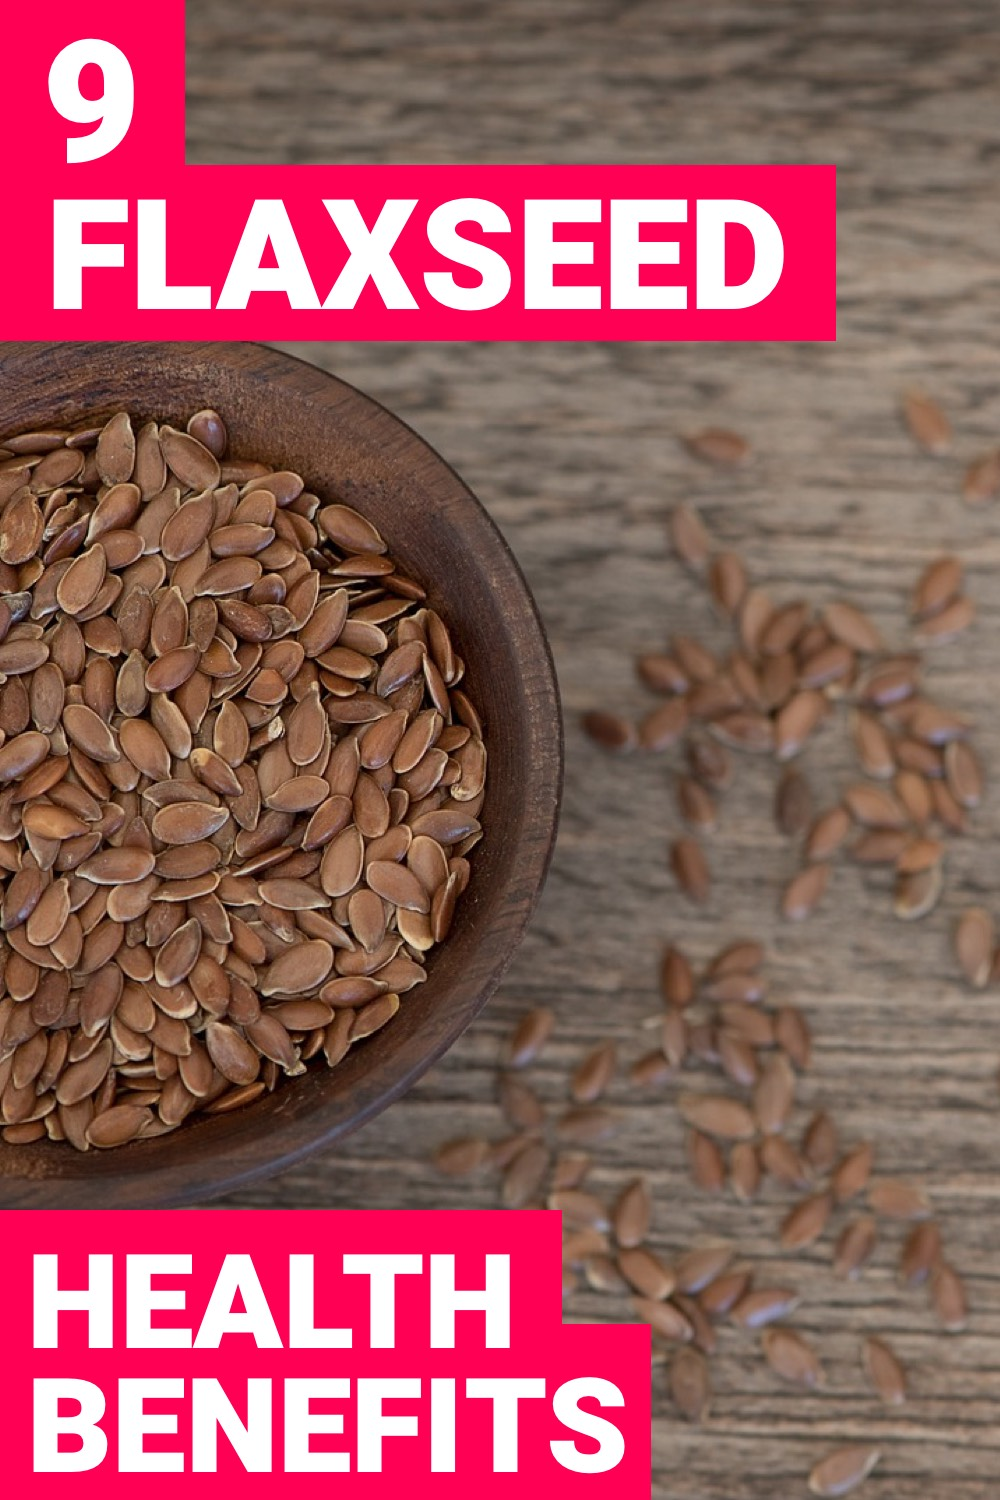 Your health is important. Flaxseed helps with this. Here are 9 health benefits of flaxseed.